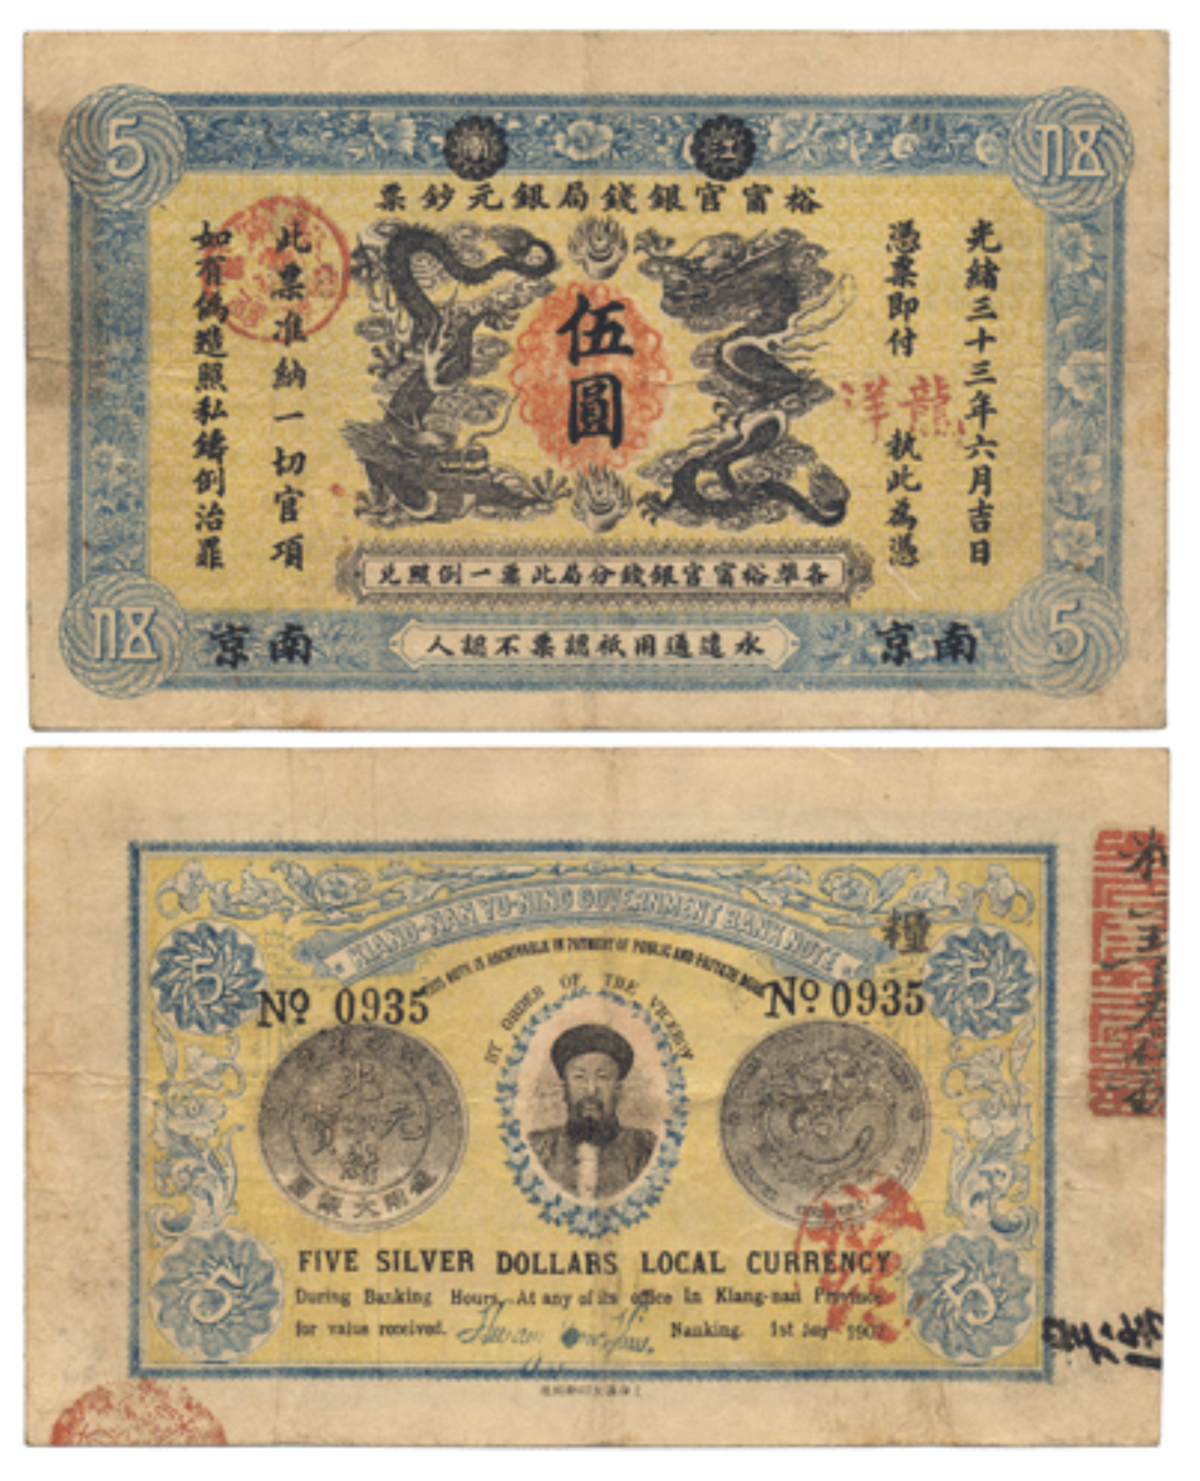 Paper Money Of The Qing Dynasty Wikipedia